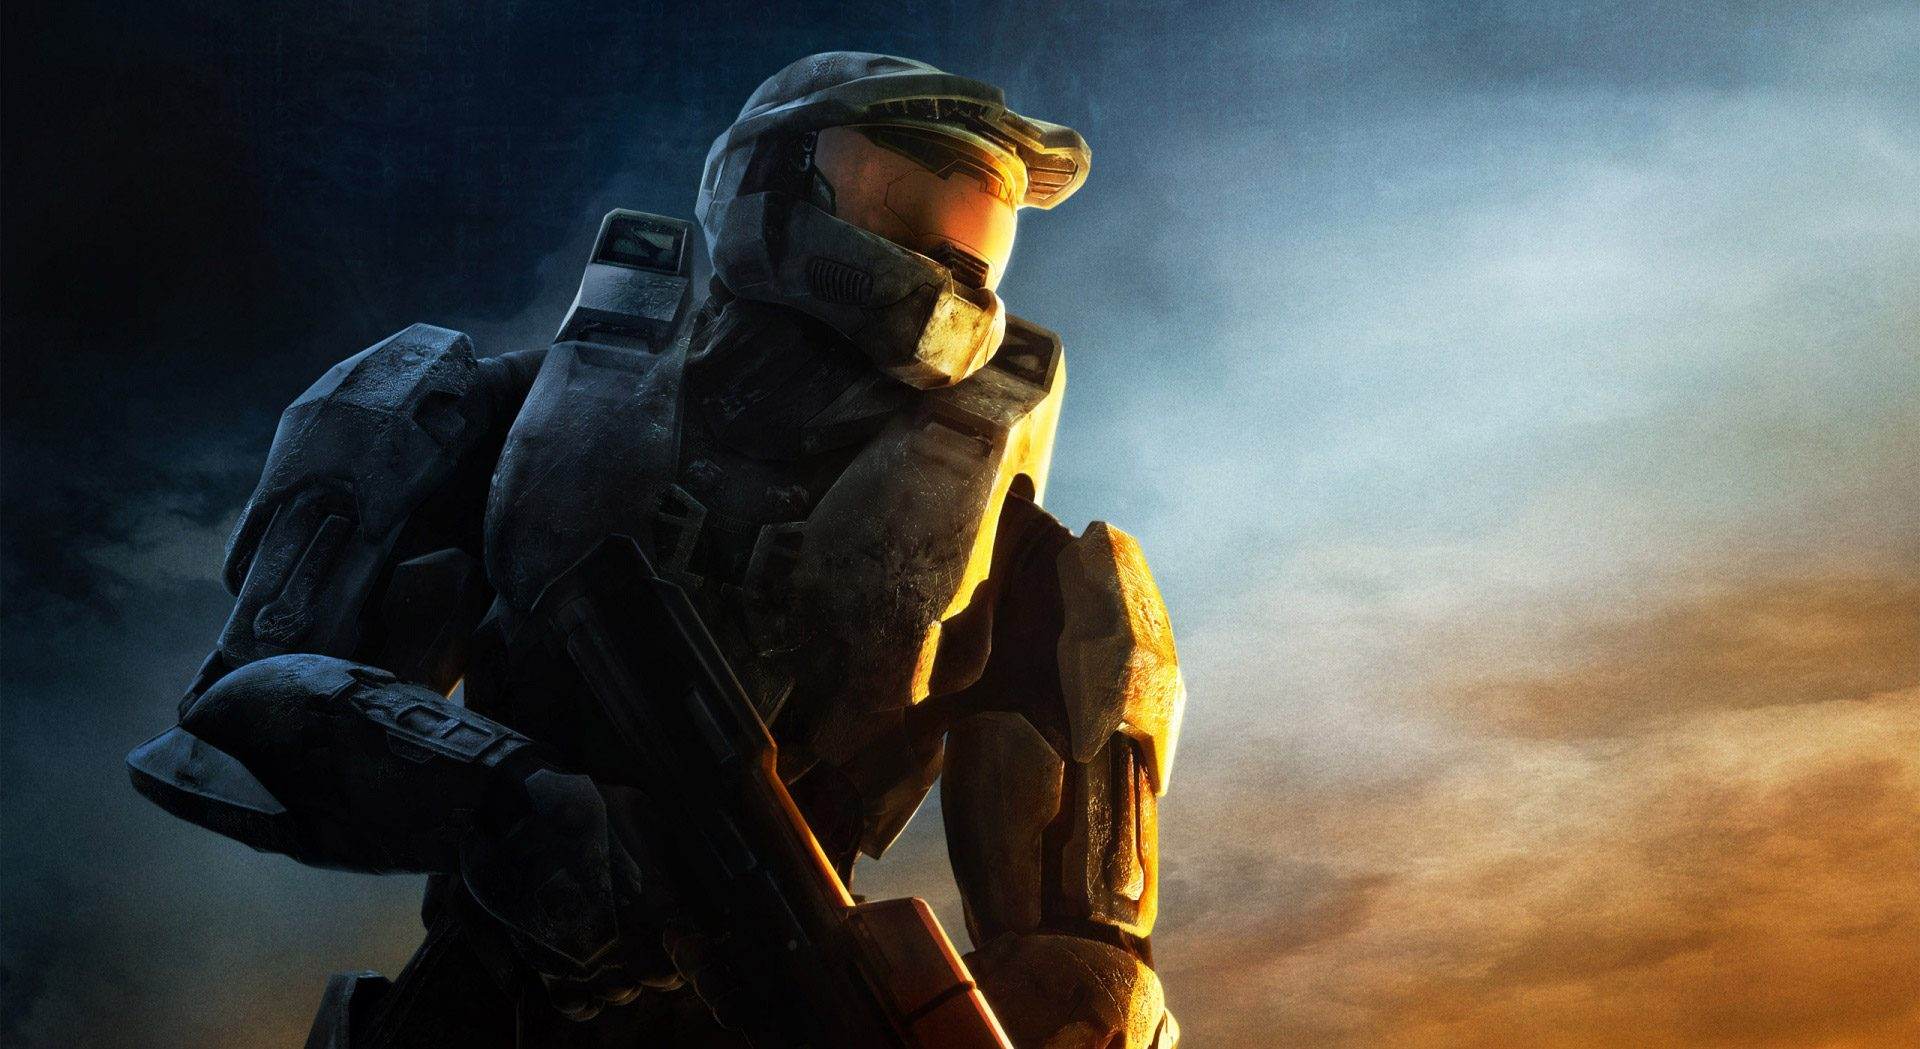 Halo 5: Guardians review – a competent campaign, but the multiplayer makes it